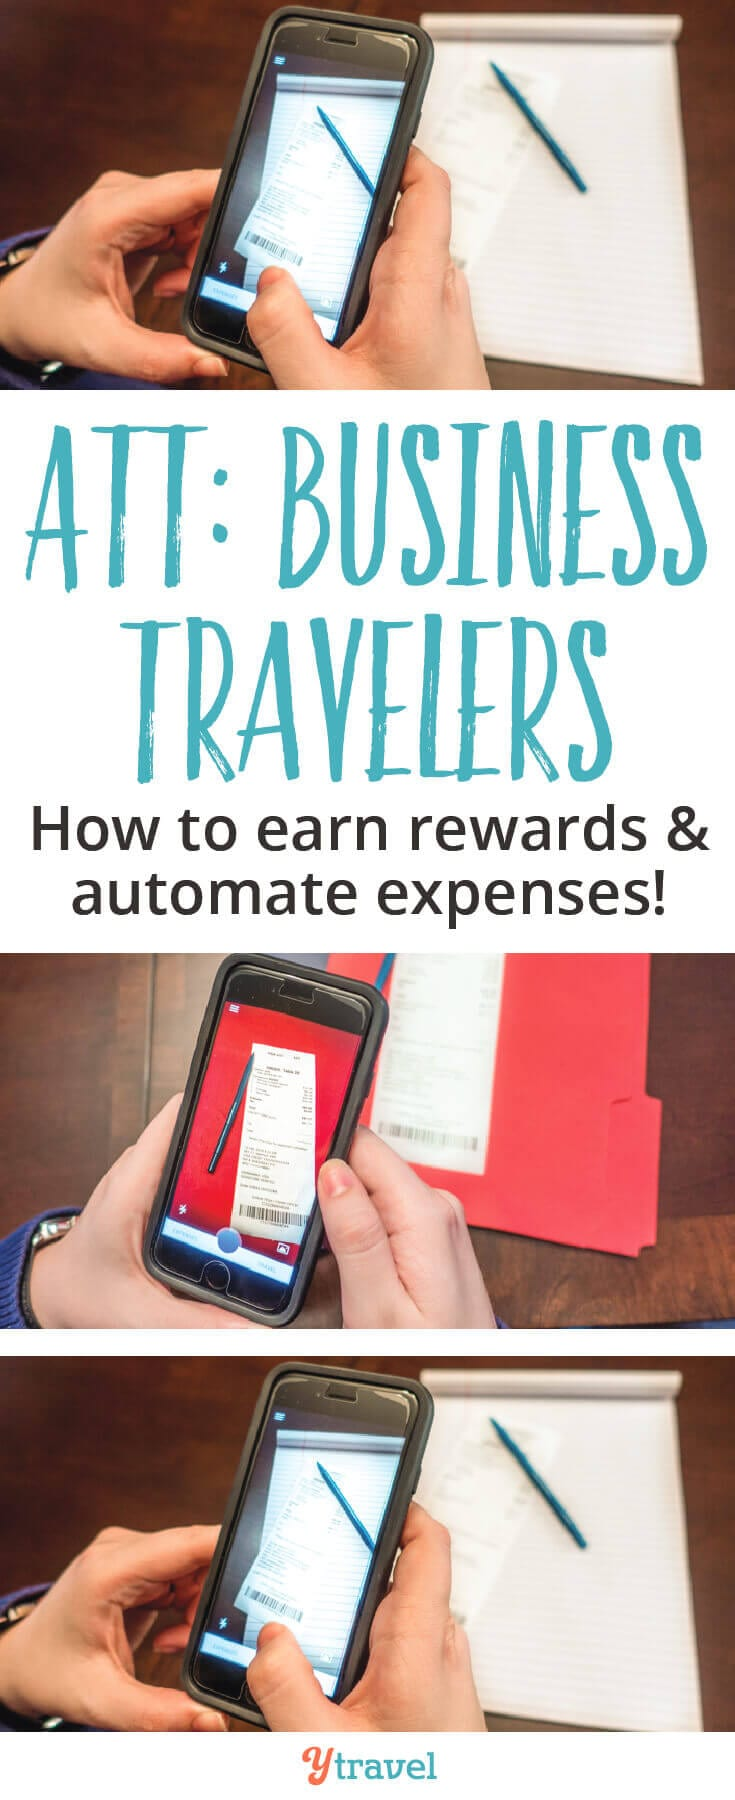 TravelBank - an amazing Travel Planning & Expense Reporting App. If you are a business traveler or take work trips, you will find this app very useful. It helps you to earn rewards and automate expenses to make reporting easy! Plus it's a handy tool for planning travel and booking flights.